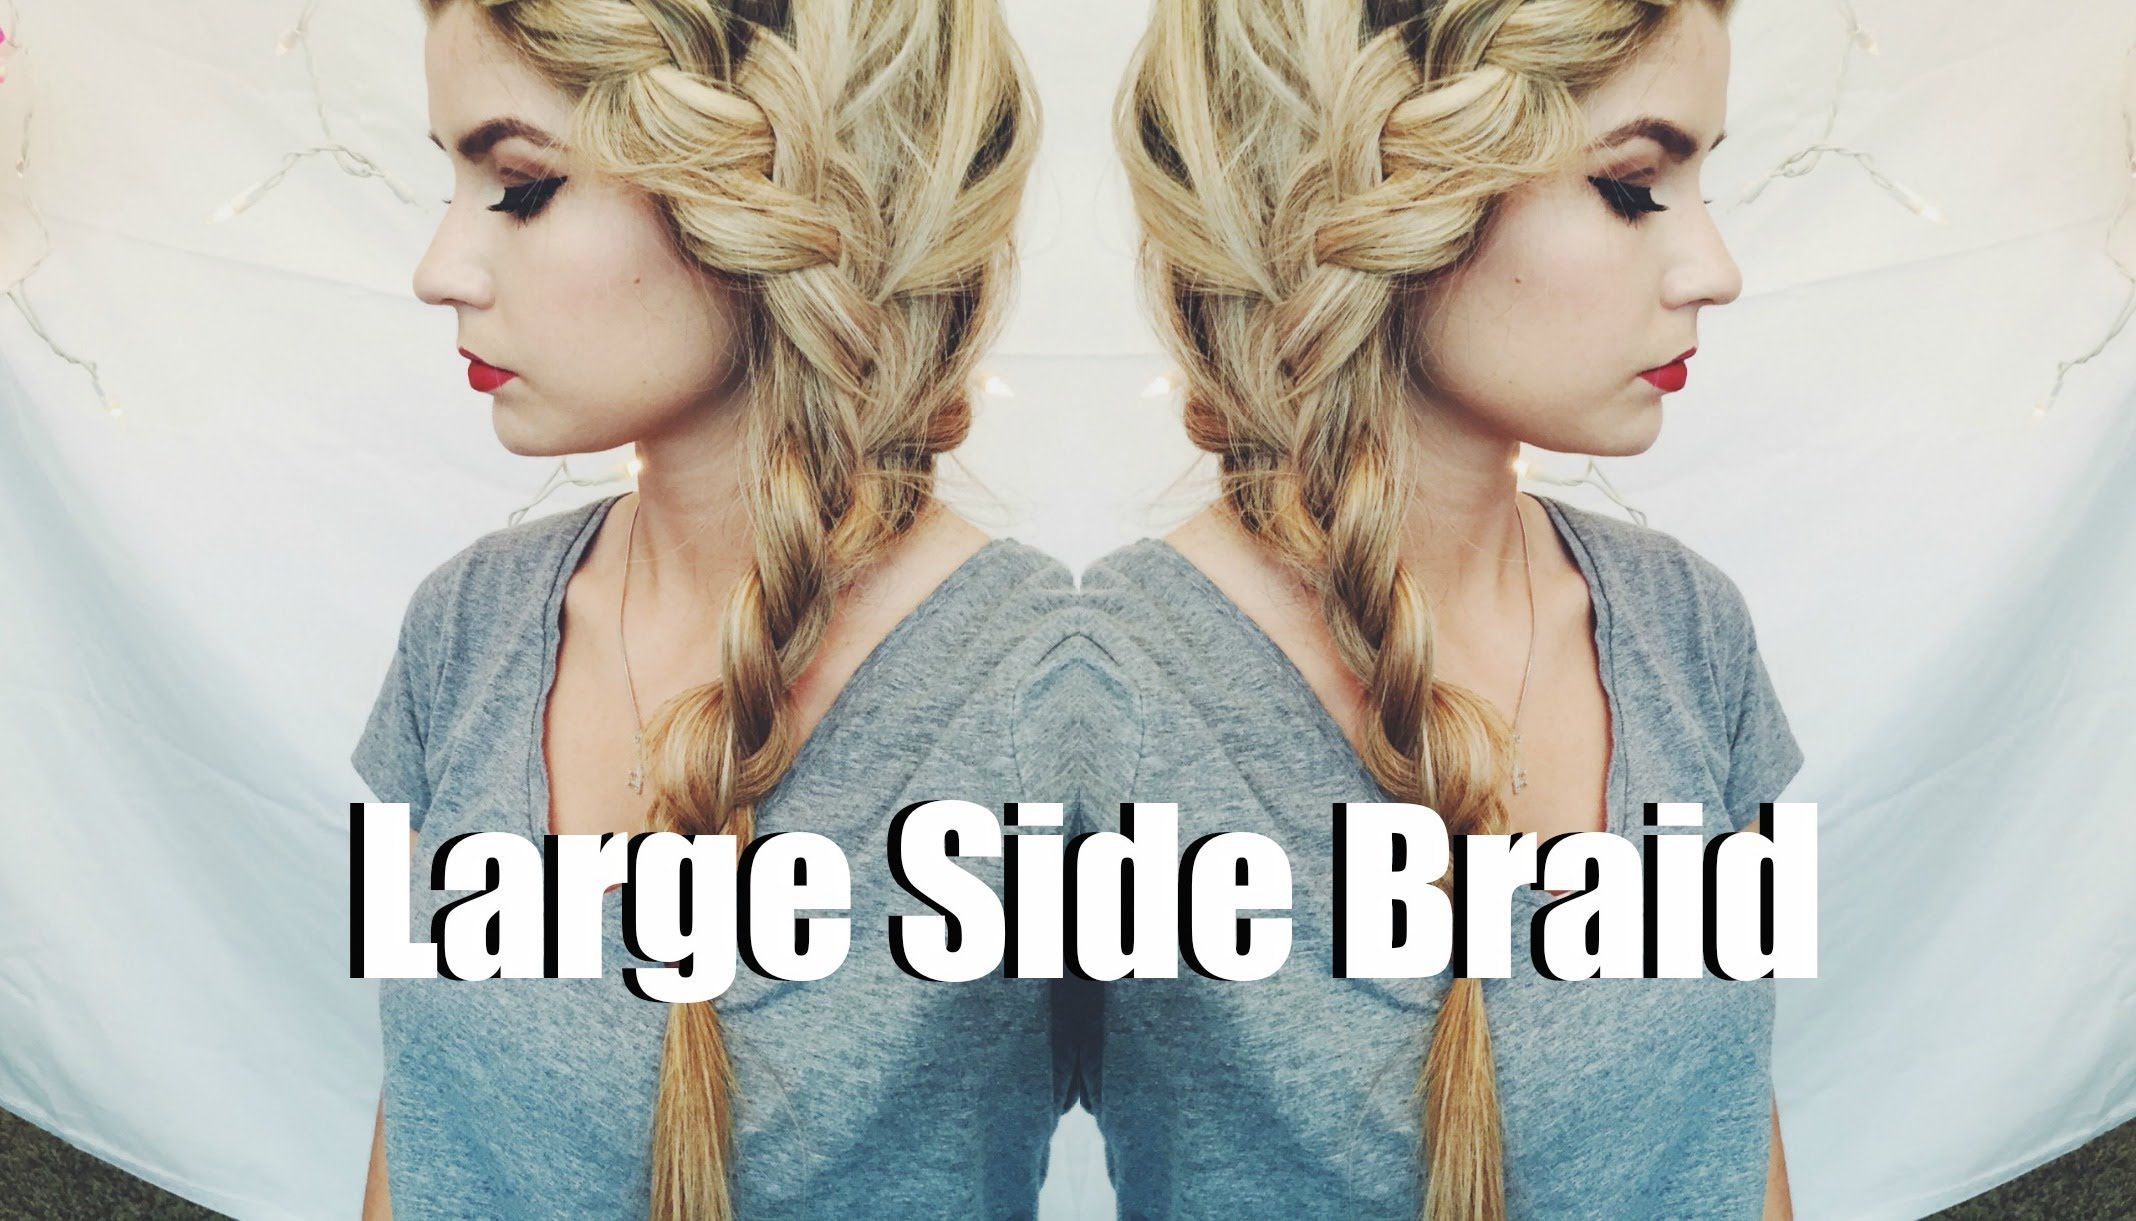 Large Side Braid ♡ Amber Fillerup Inspired | #dyt #dressingyourtruth #dyttype2 #type2